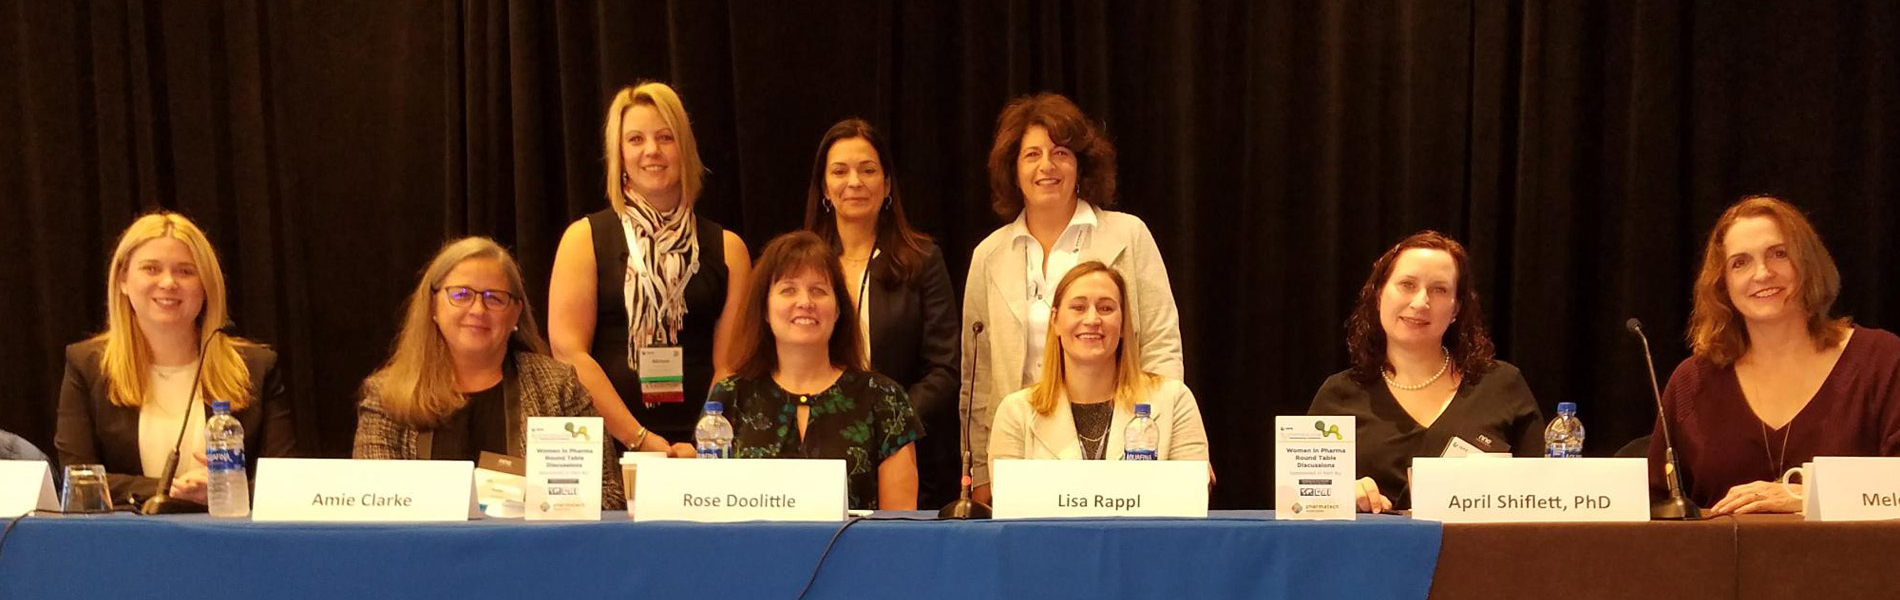 Women in Pharma Roundtable Session  - ISPE Pharmaceutical Engineering